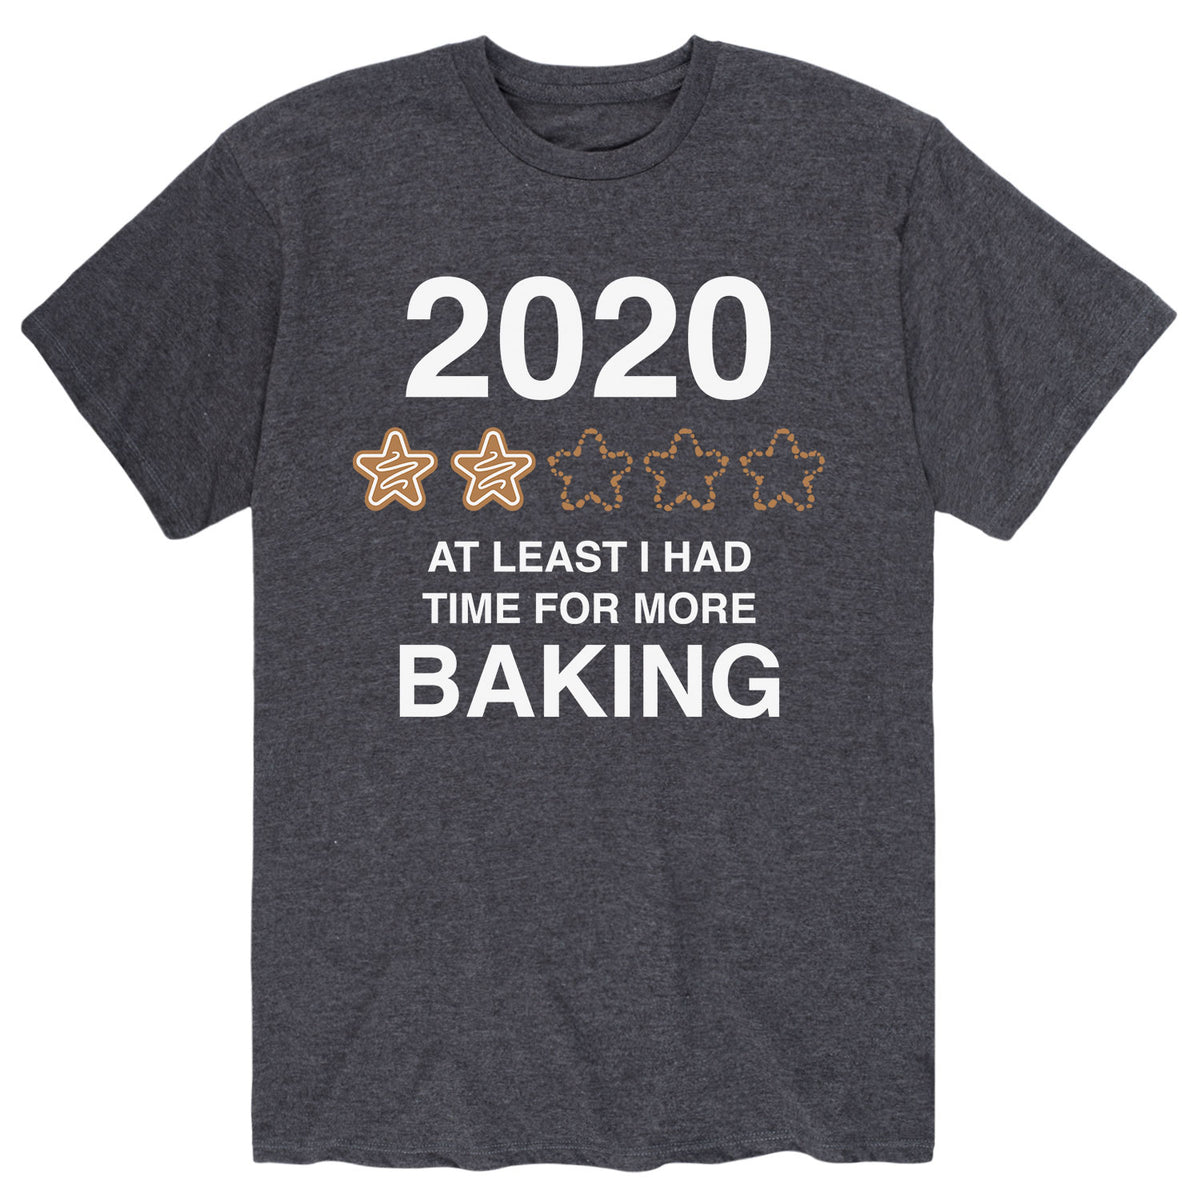 2020 More Time For Baking - Men's Short Sleeve T-Shirt